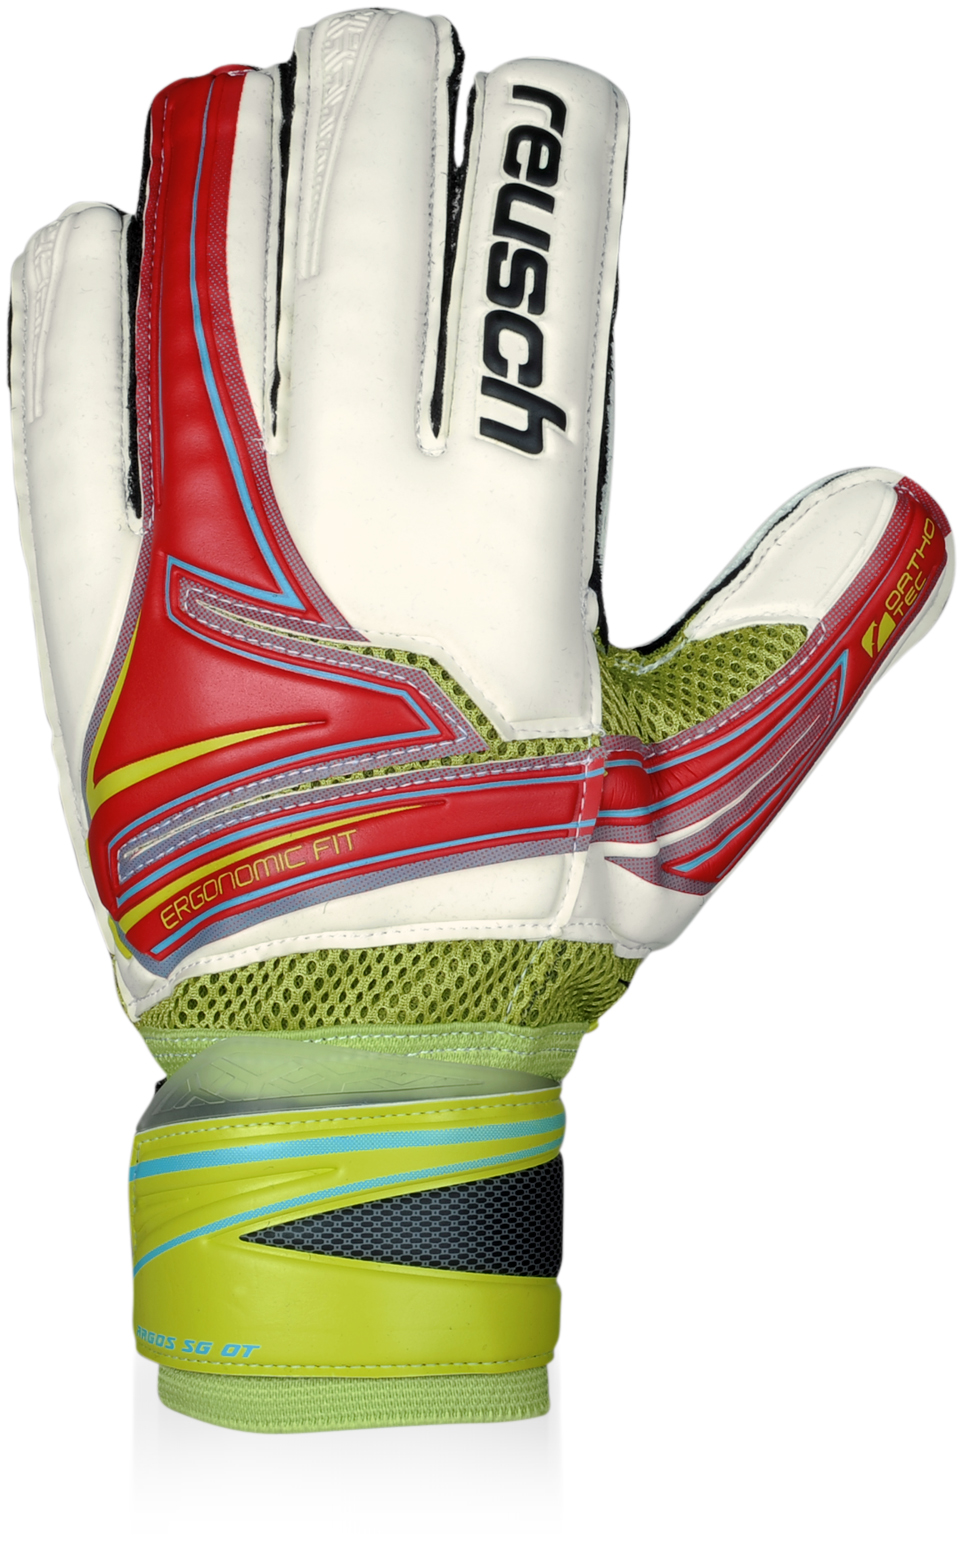 Reusch Argos Sg Ortho-tec Goalkeeper Gloves (red)